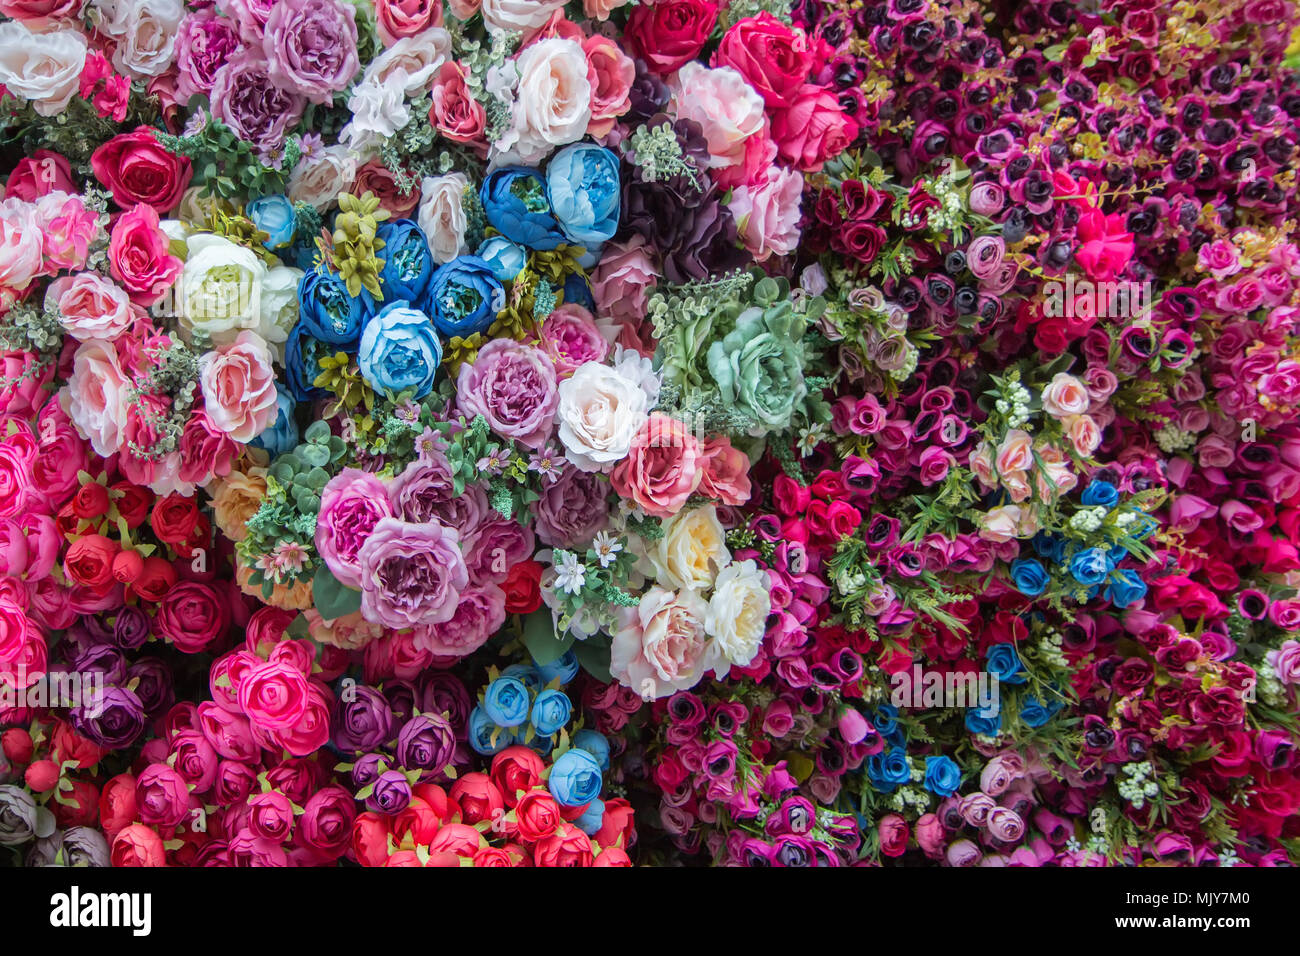 Floral background roses with other flowers set of rustic flowers floral background roses with other flowers set of rustic flowers pink blue and purple flowers izmirmasajfo